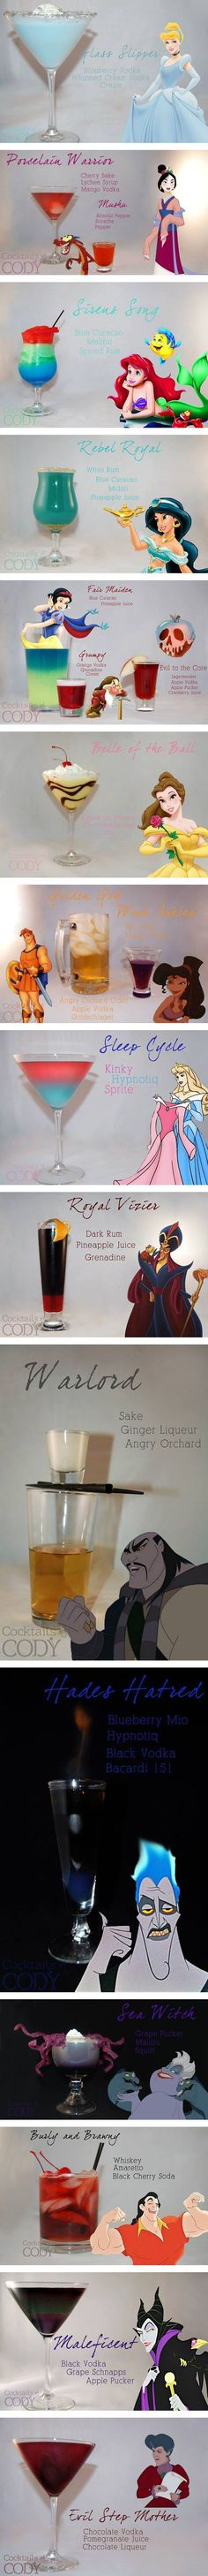 Disney princess themed cocktails. They all look so damn good